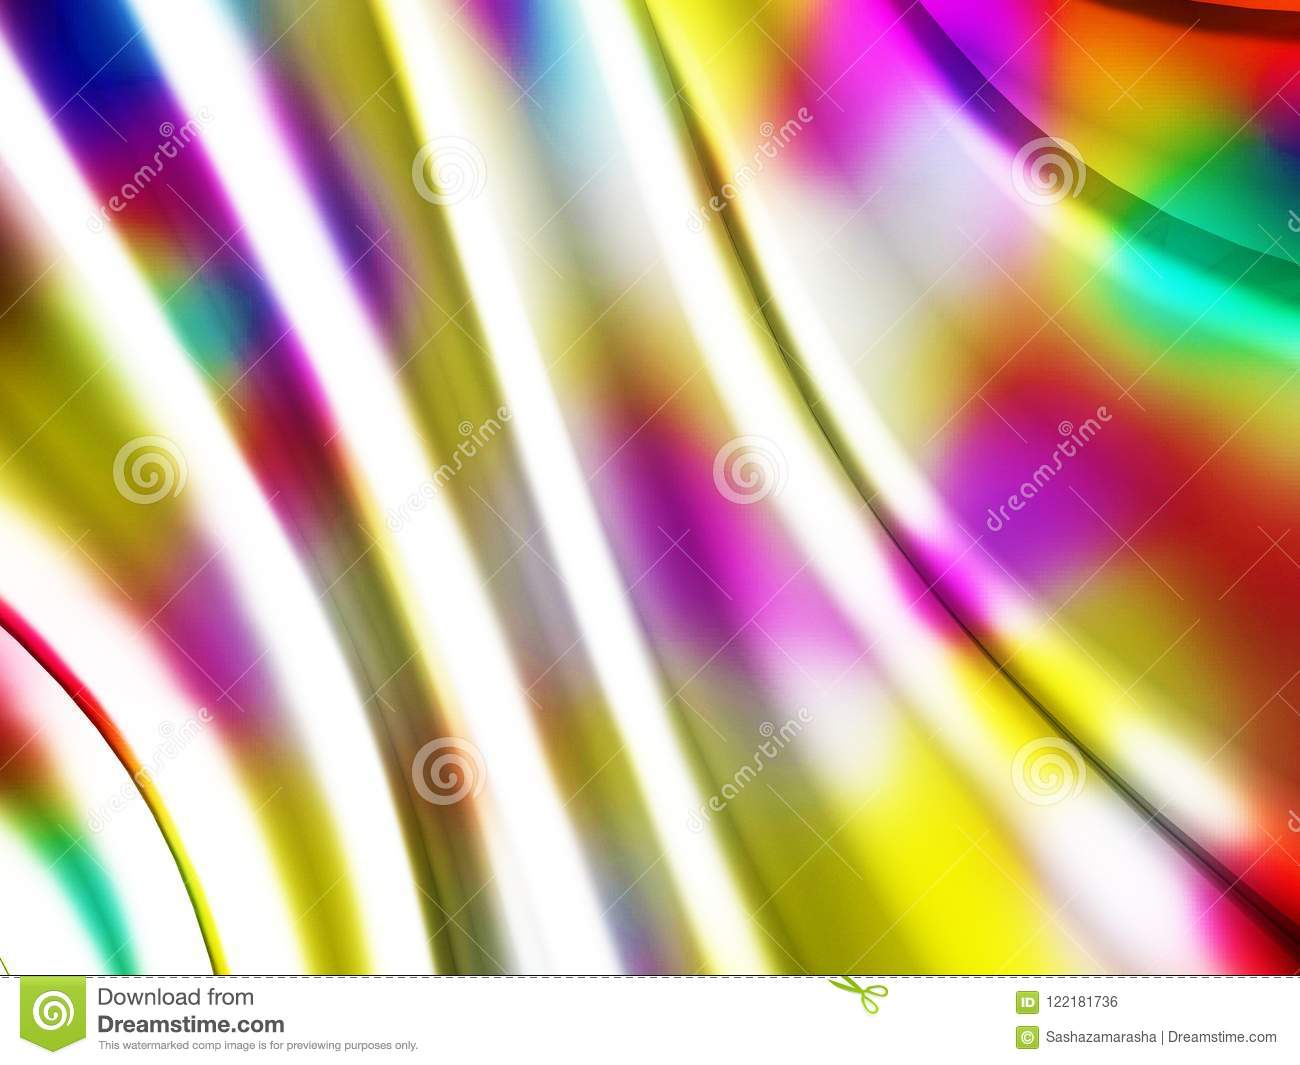 Abstract wavy glossy colorful shiny metallic background